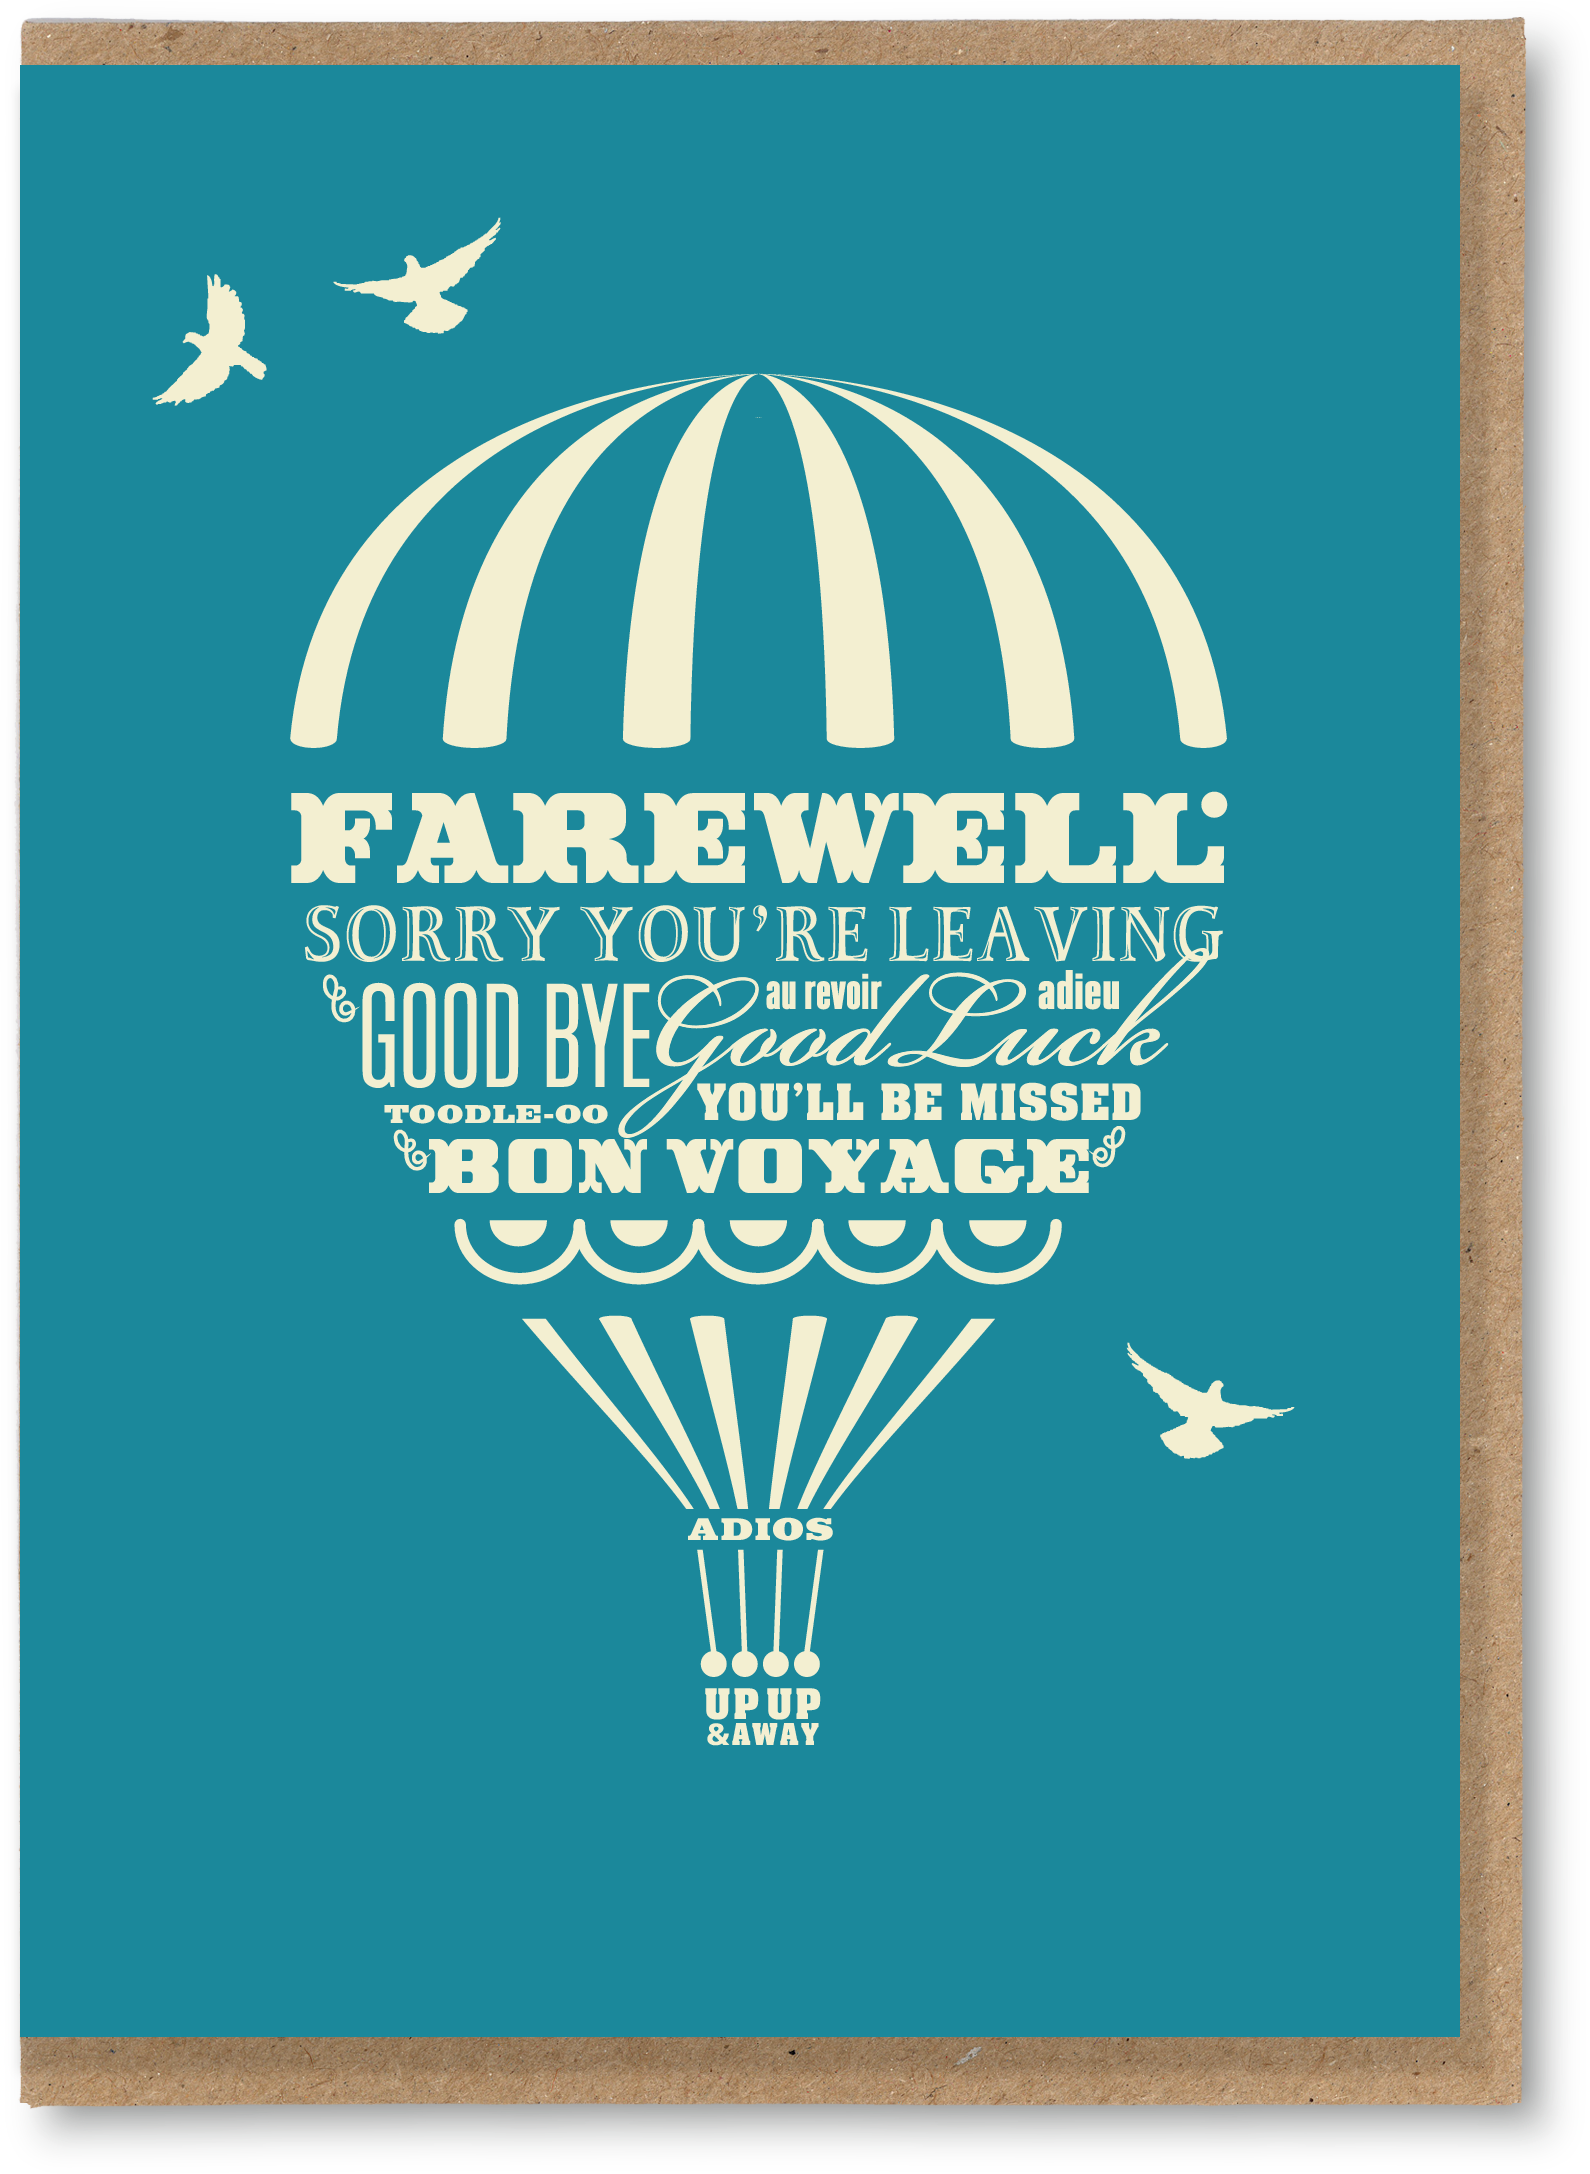 Farewell Card Png 1590 2174 Farewell Cards Card Layout Goodbye And Good Luck